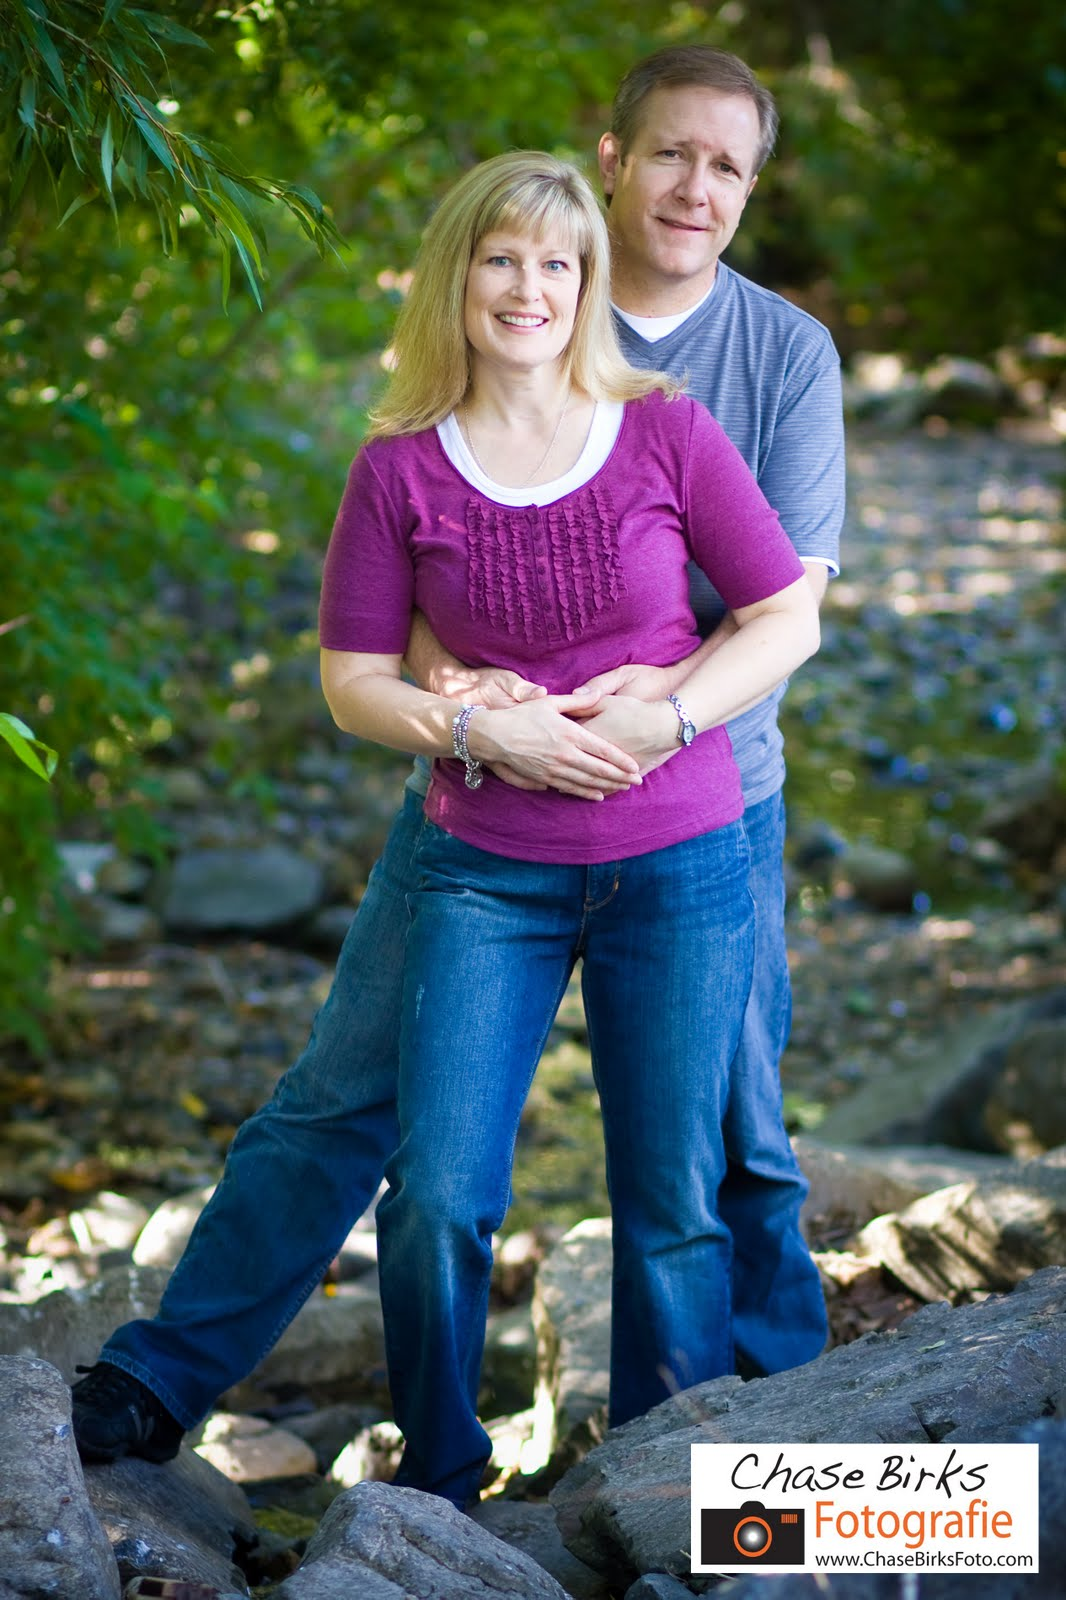 Outdoor Family Photo Shoot Ideas http://chasebirksphotography.blogspot.com/2010/08/another-outdoor-family-photo-shoot.html